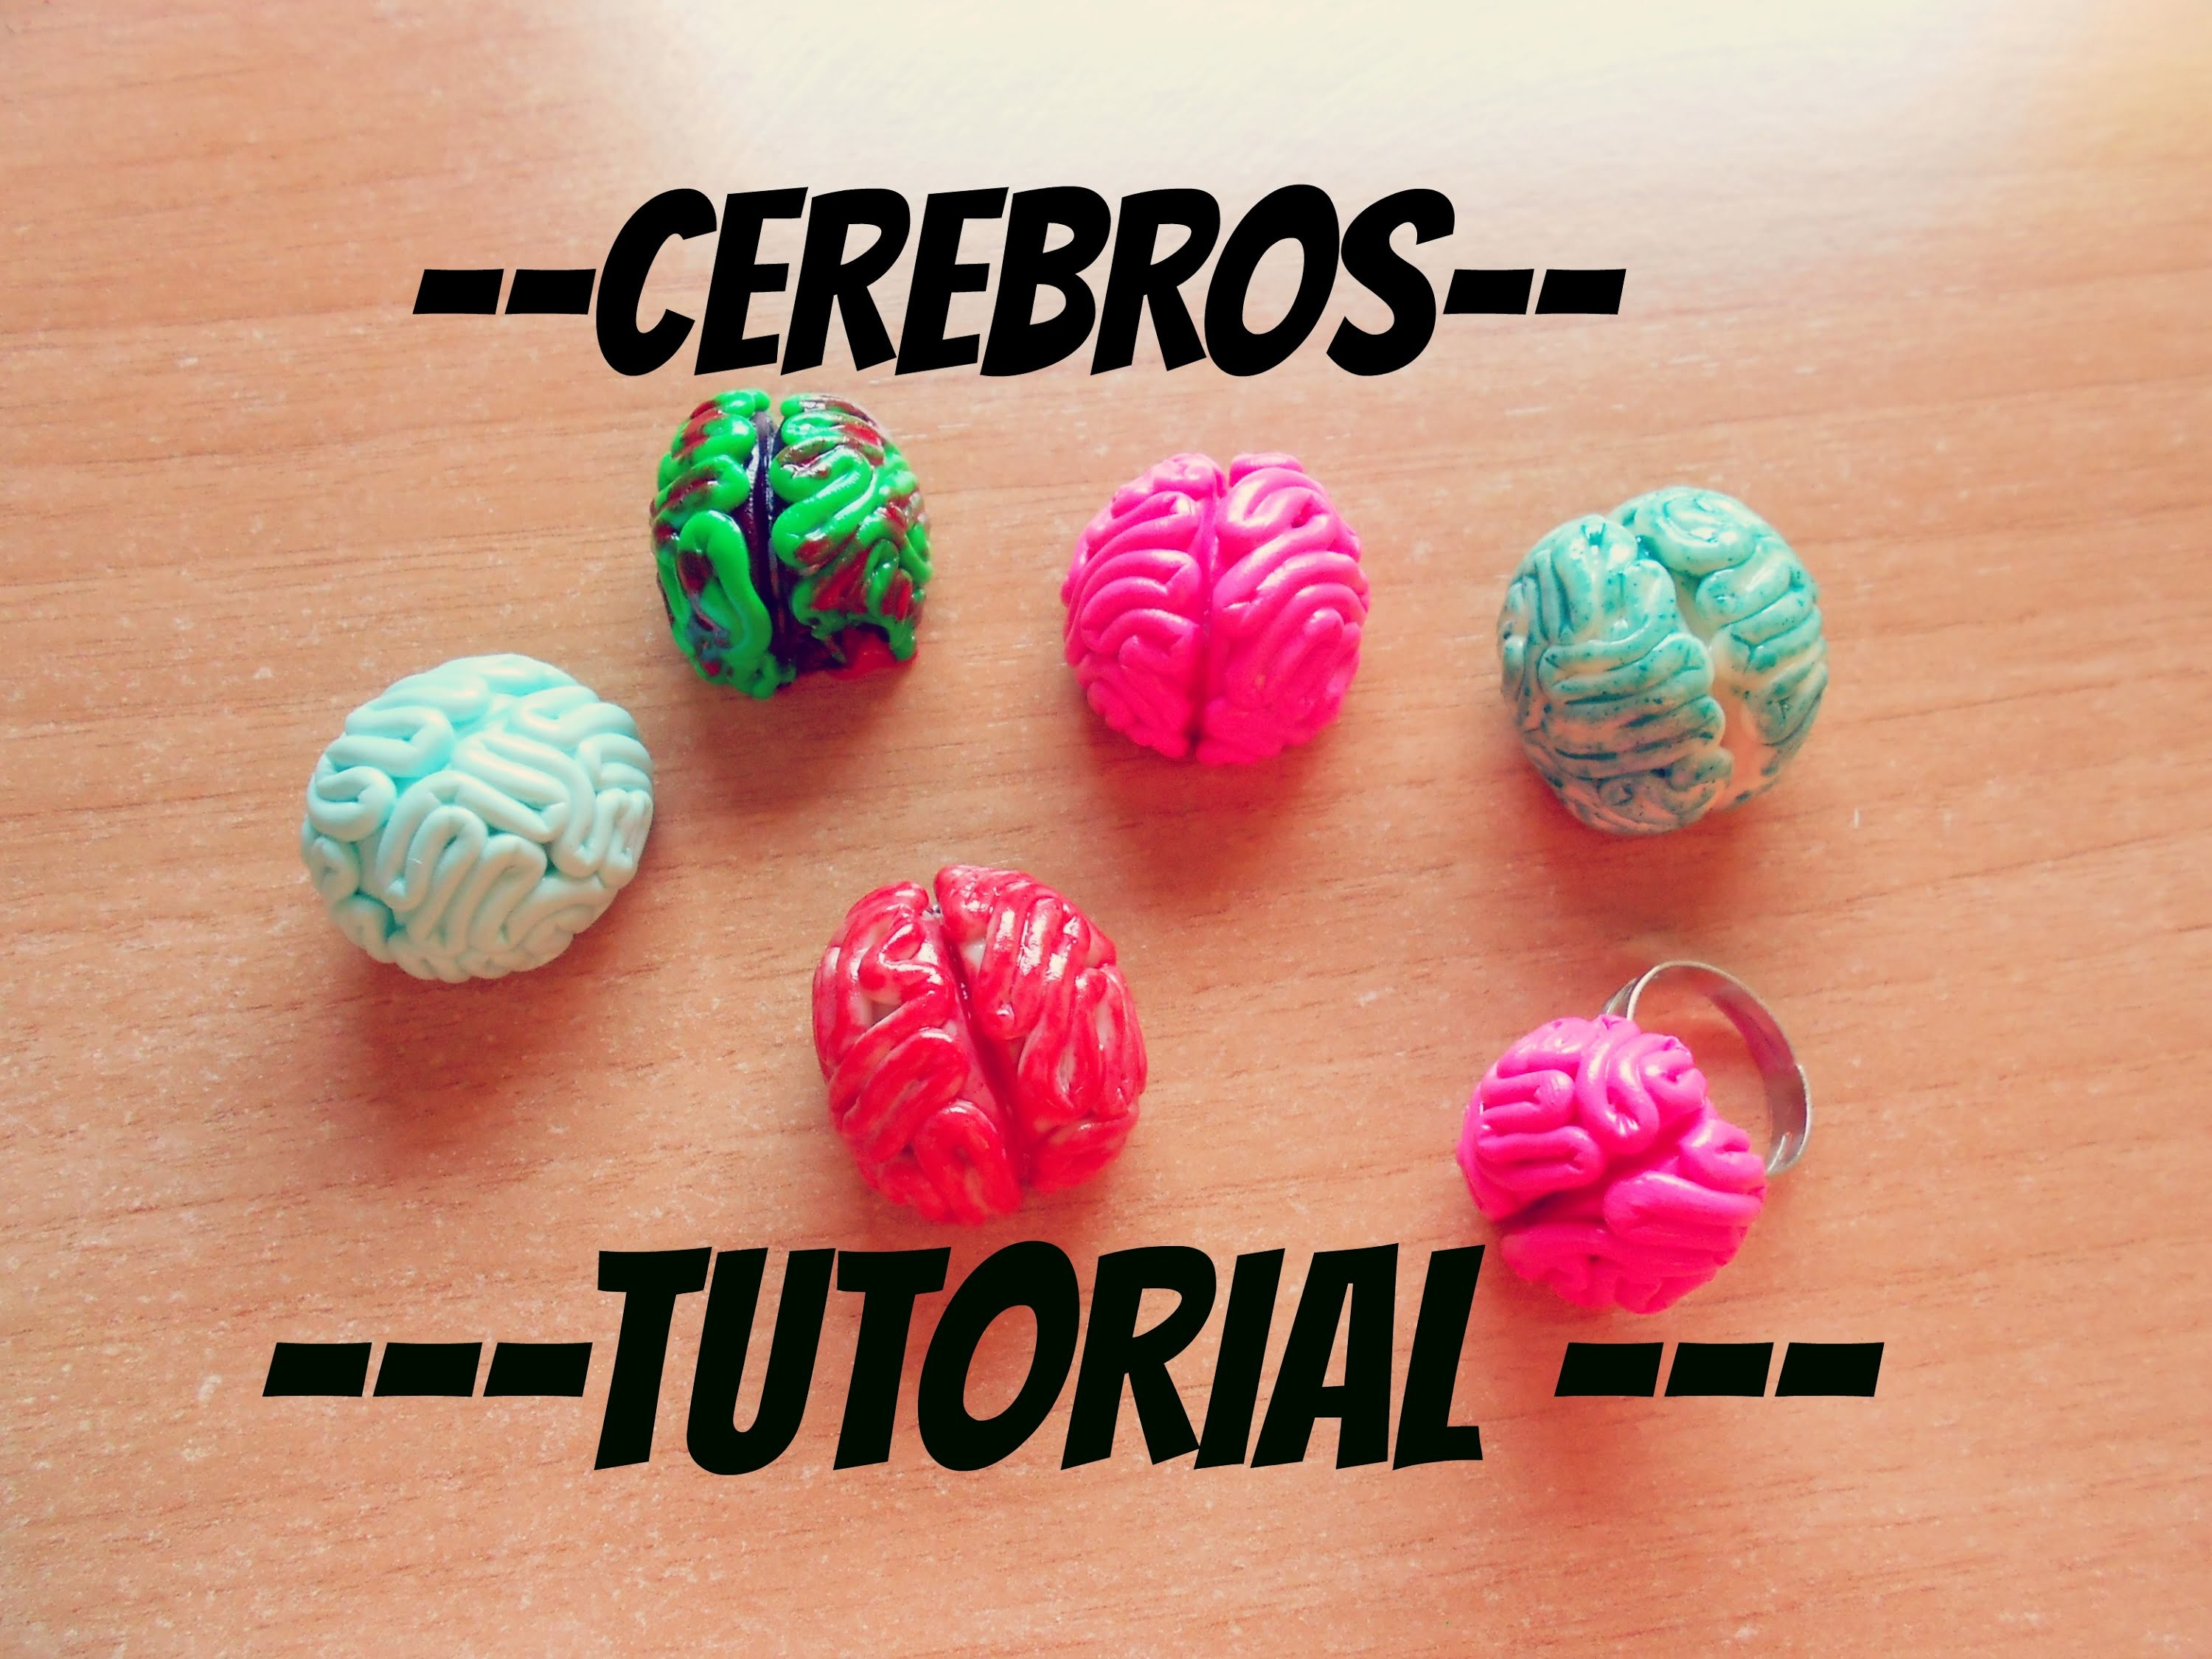 Tutorial: Cerebros, anillo y colgante